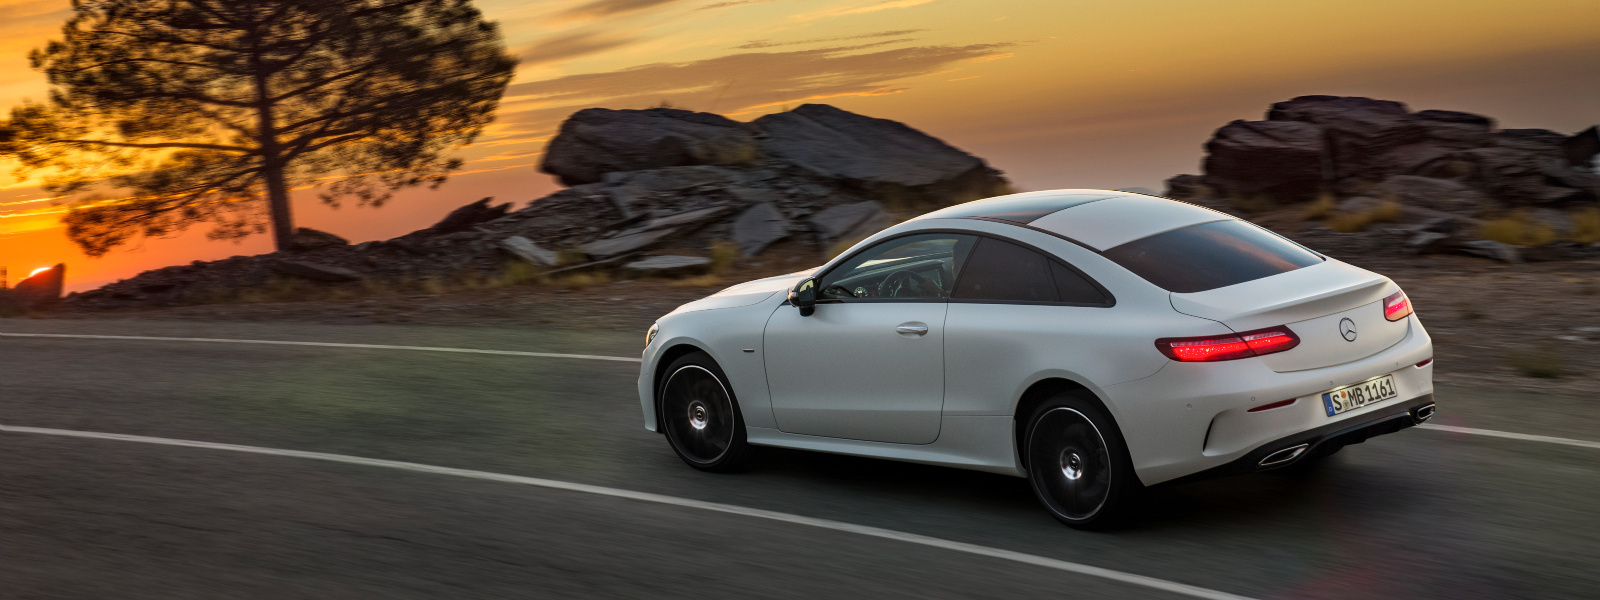 E-Class Coupe - Global Supplier Training Program